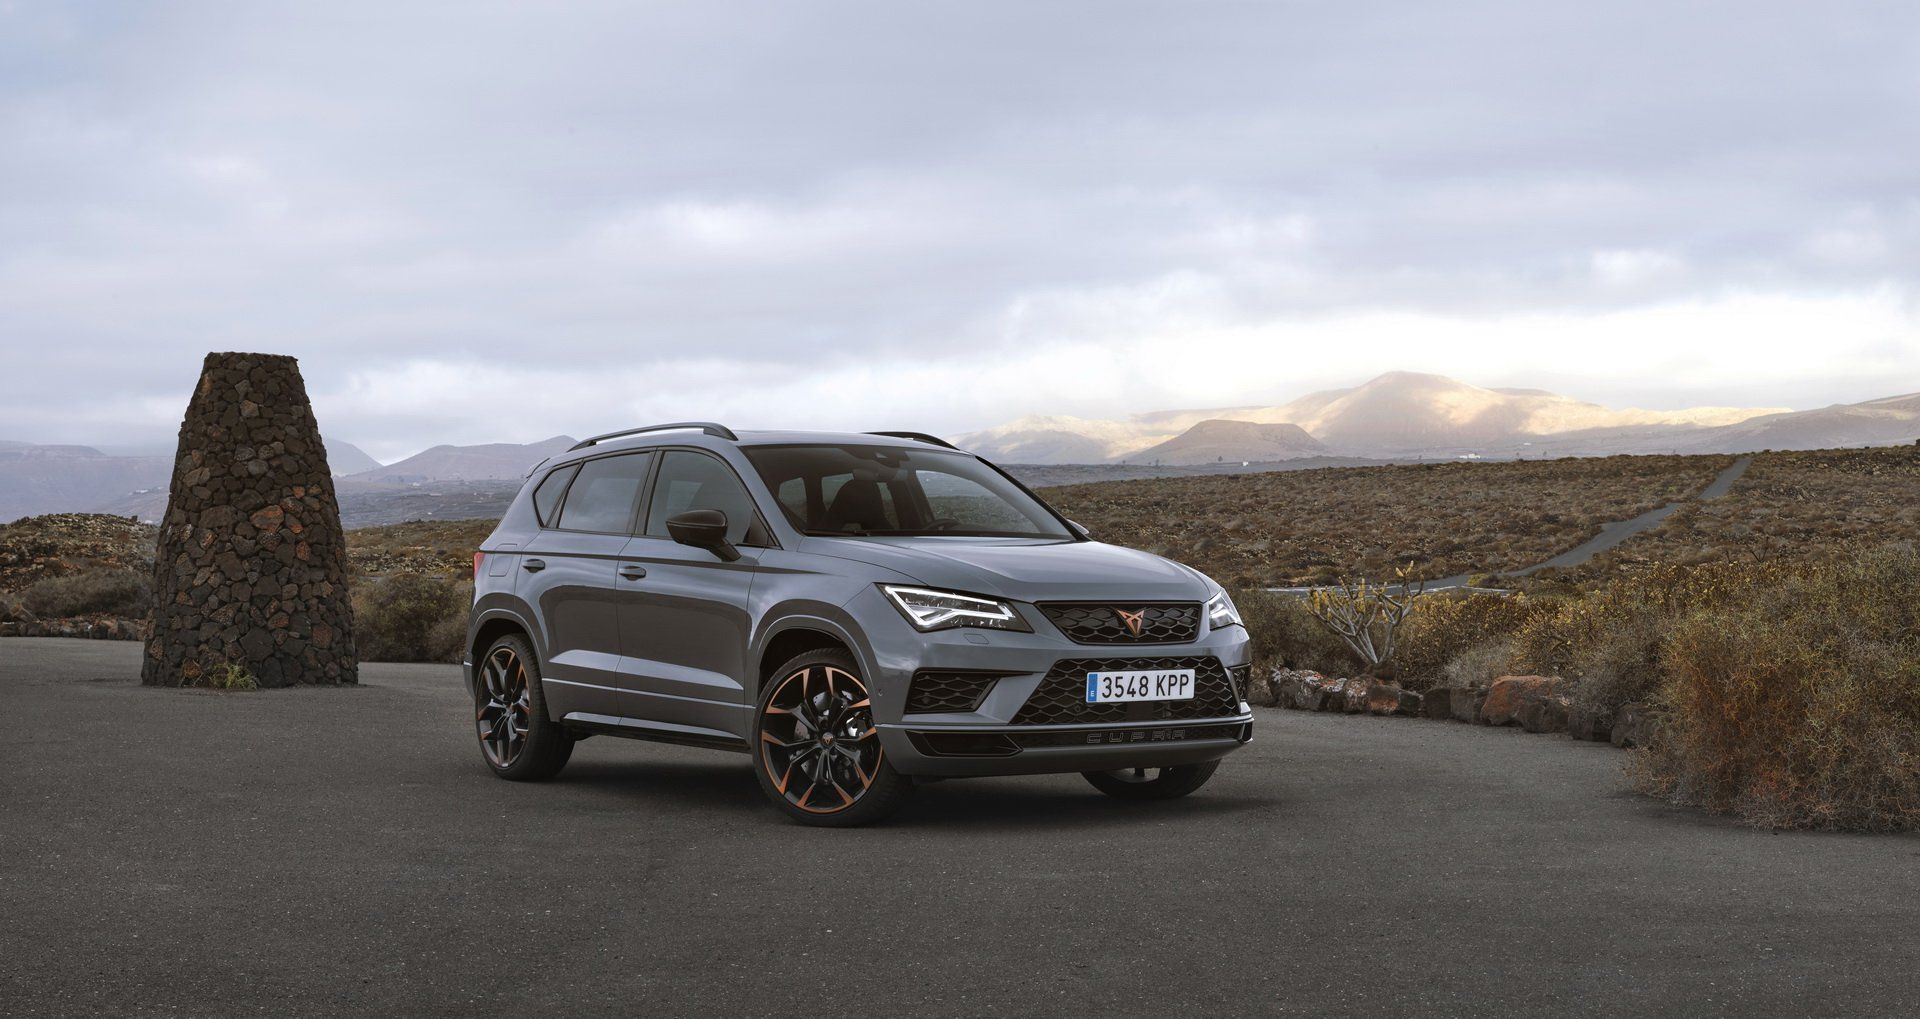 Cupra-Ateca-Limited-Edition-3